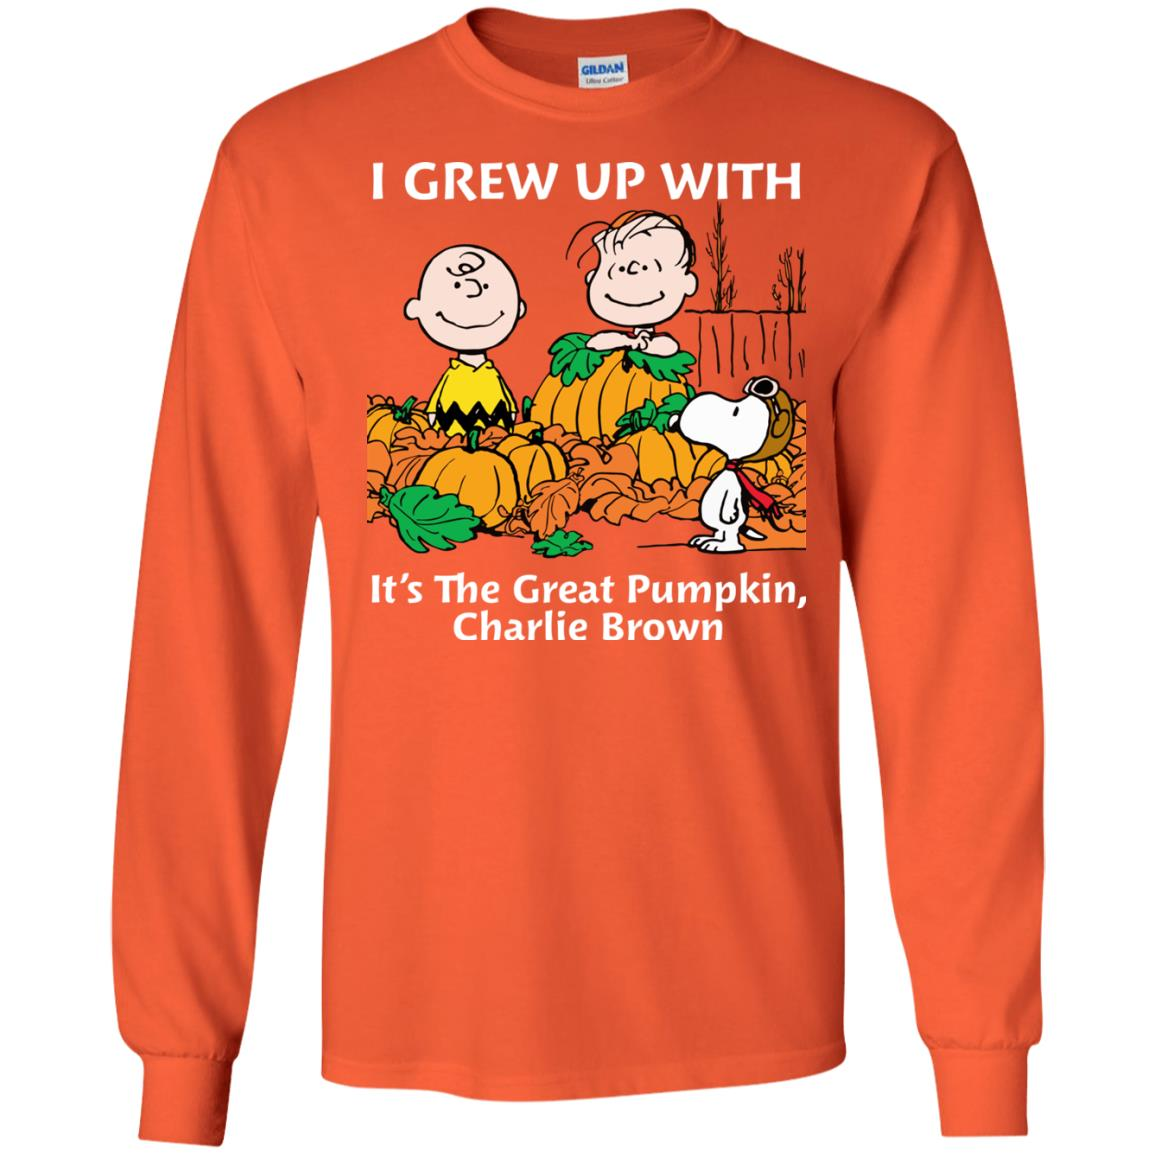 image 269 - Charlie Brown: I grew up with It's The Great Pumpkin shirt, sweater